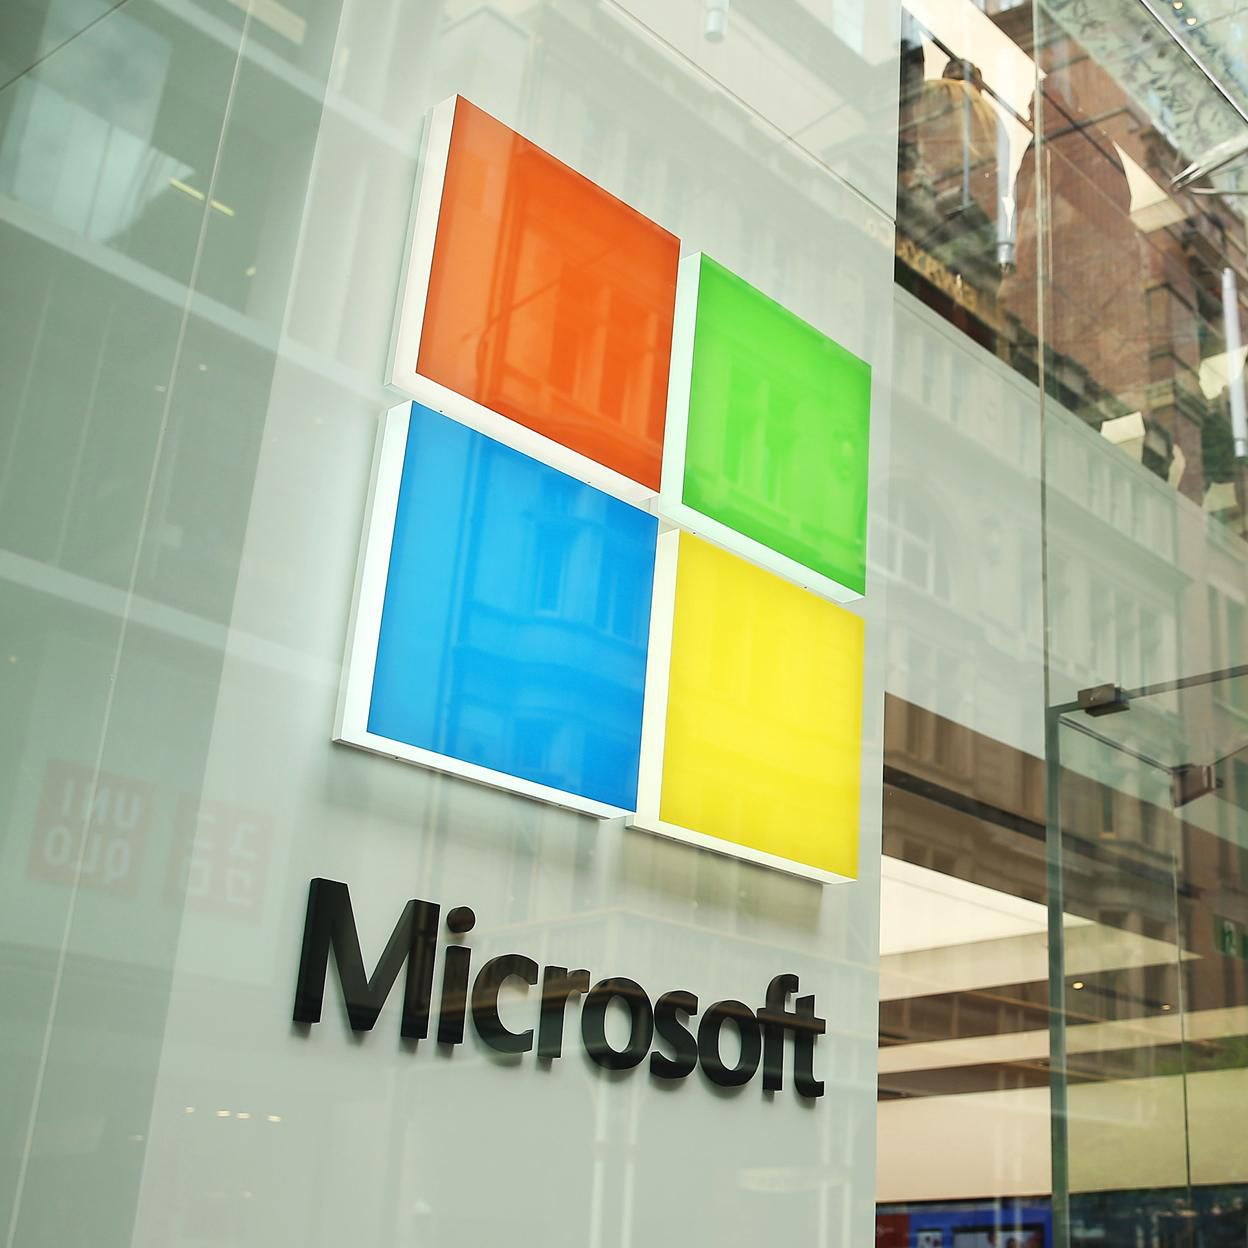 Microsoft will pay regular wages to hourly employees even if their work hours are reduced due to the COVID-19 outbreak 1